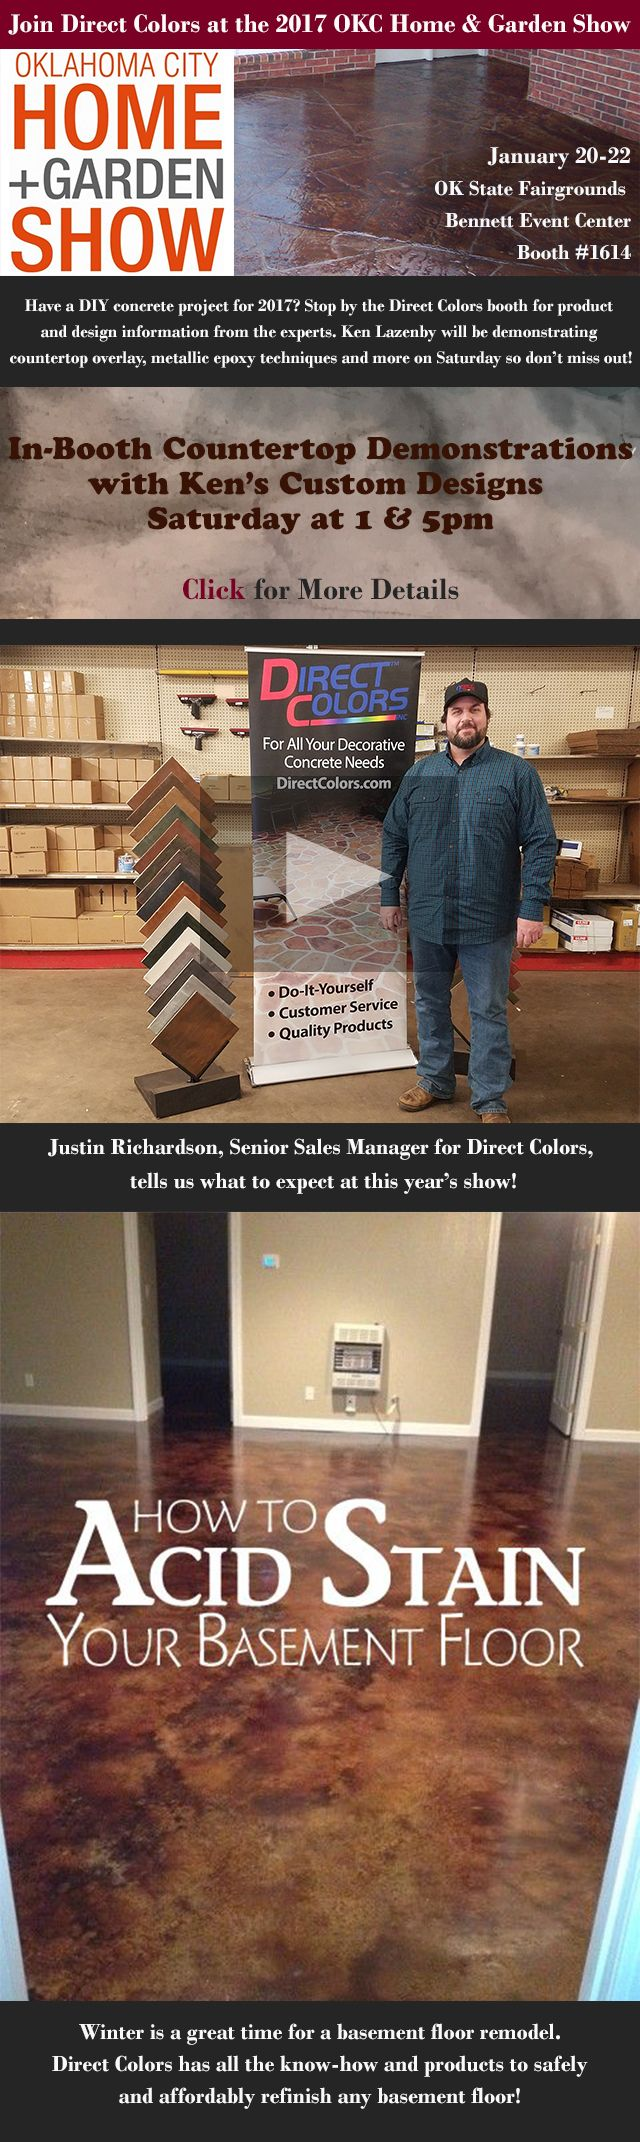 Color booth online - Check Out The Latest Direct Colors Design News Includes The Details About The Upcoming Okc Home